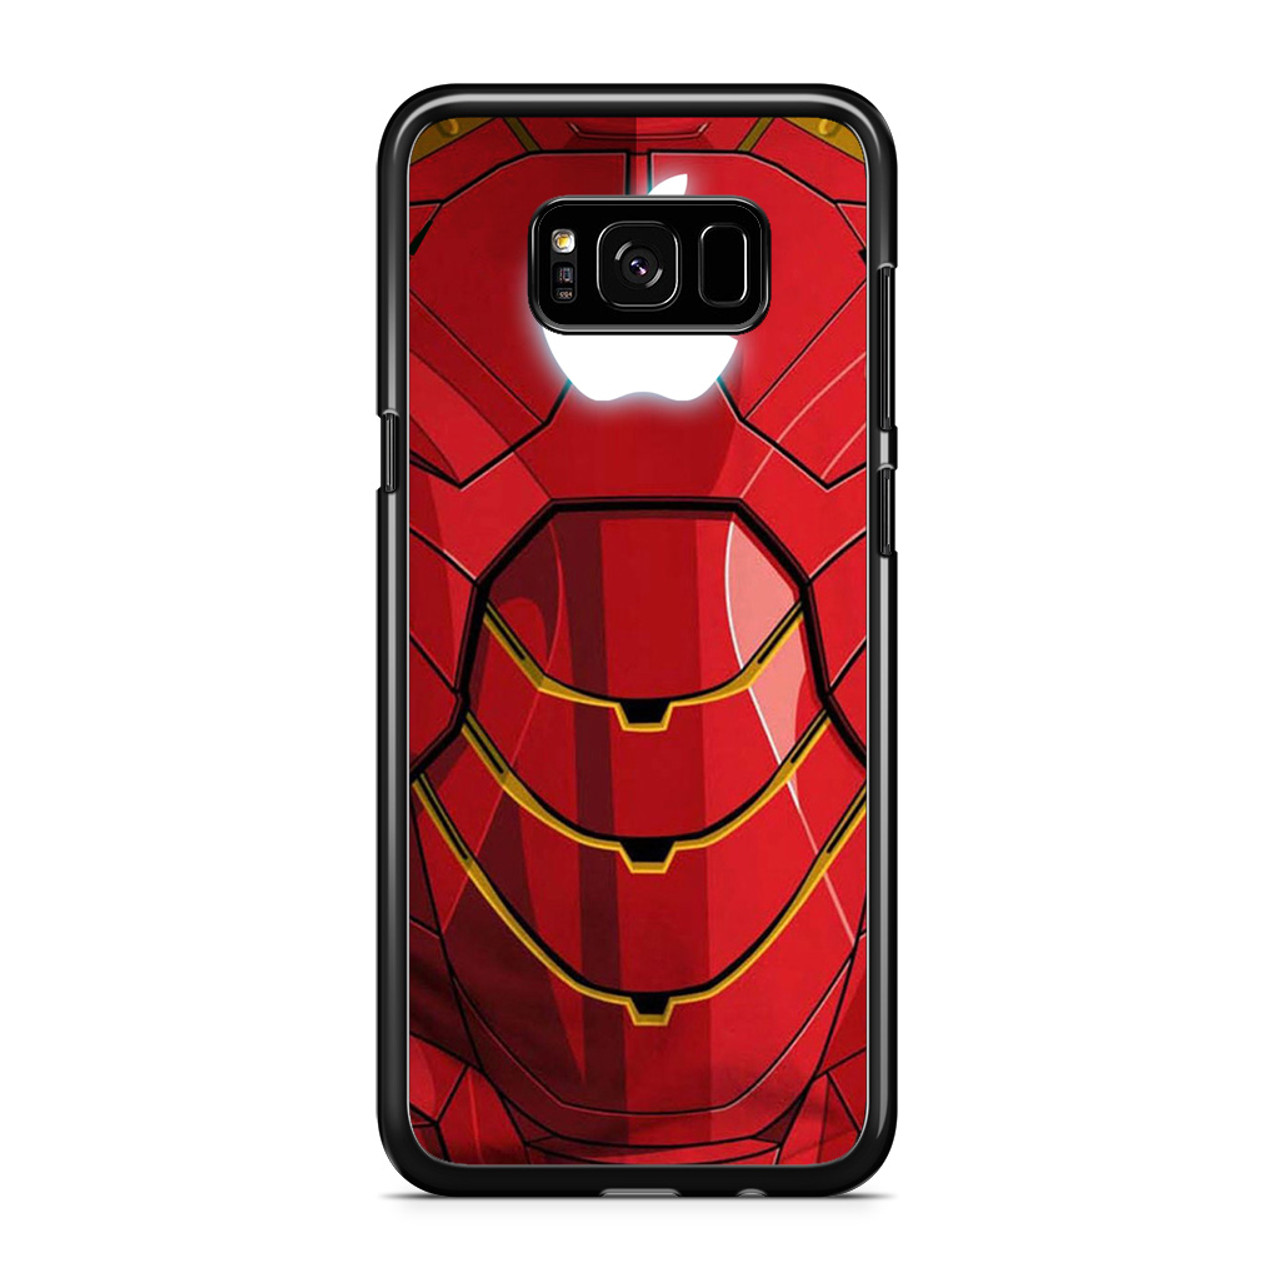 online retailer 99dd0 576dd Iron man apple logo Samsung Galaxy S8 Case